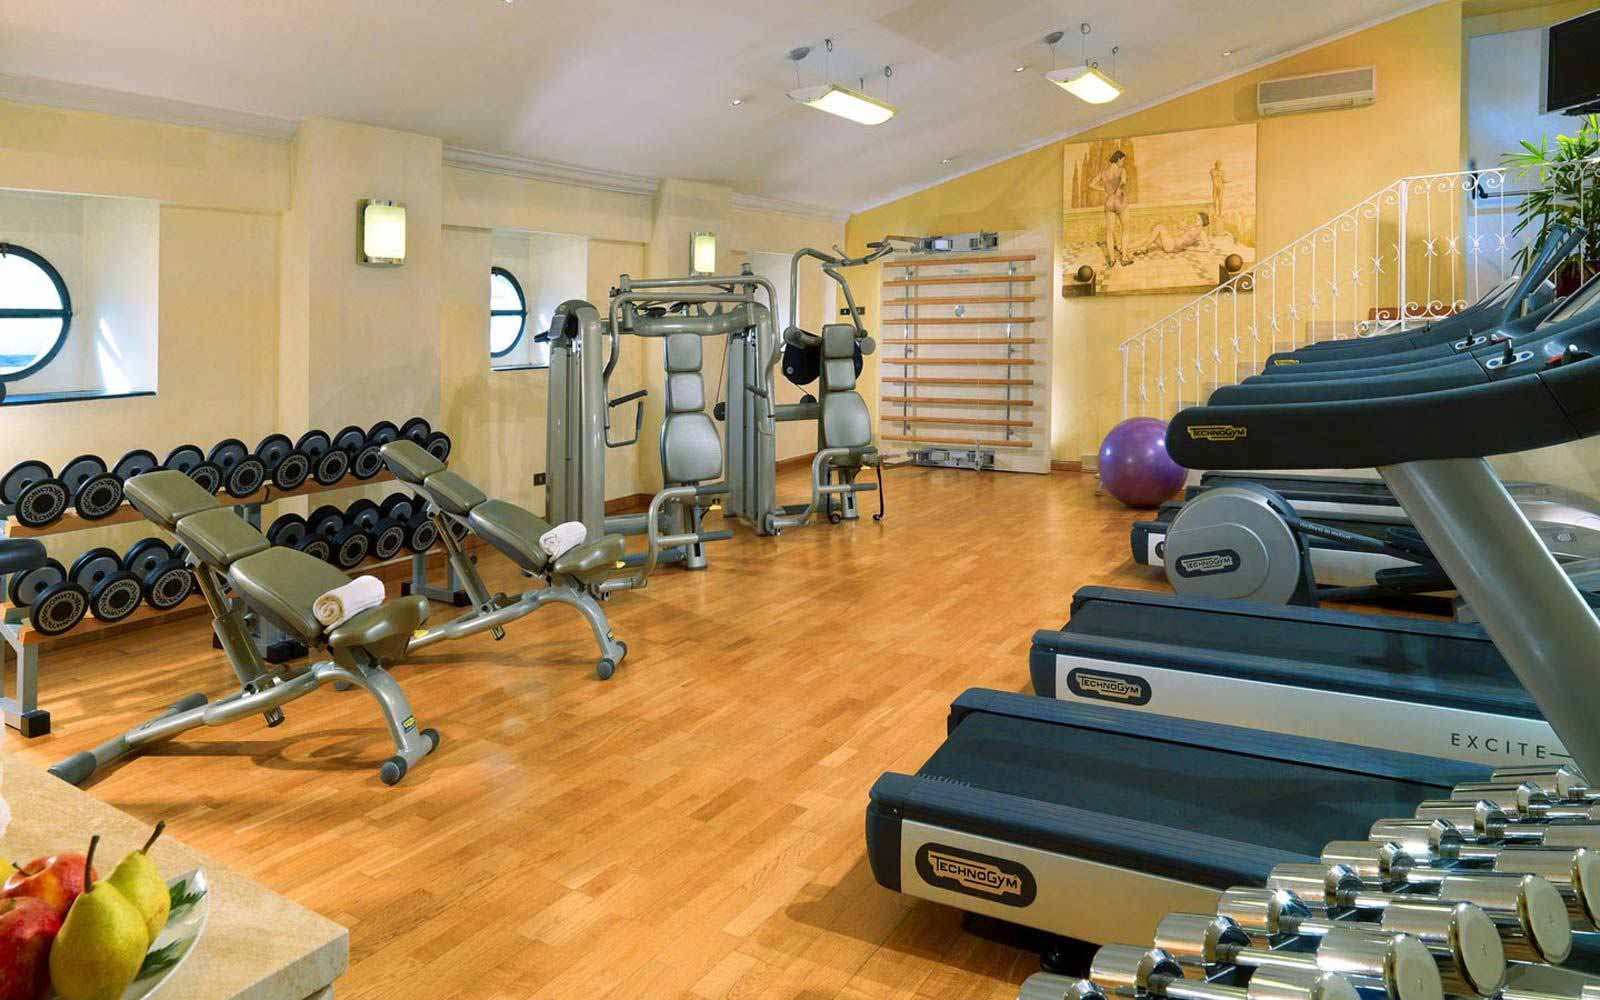 KamiSpa fitness centre at St.Regis Grand Hotel